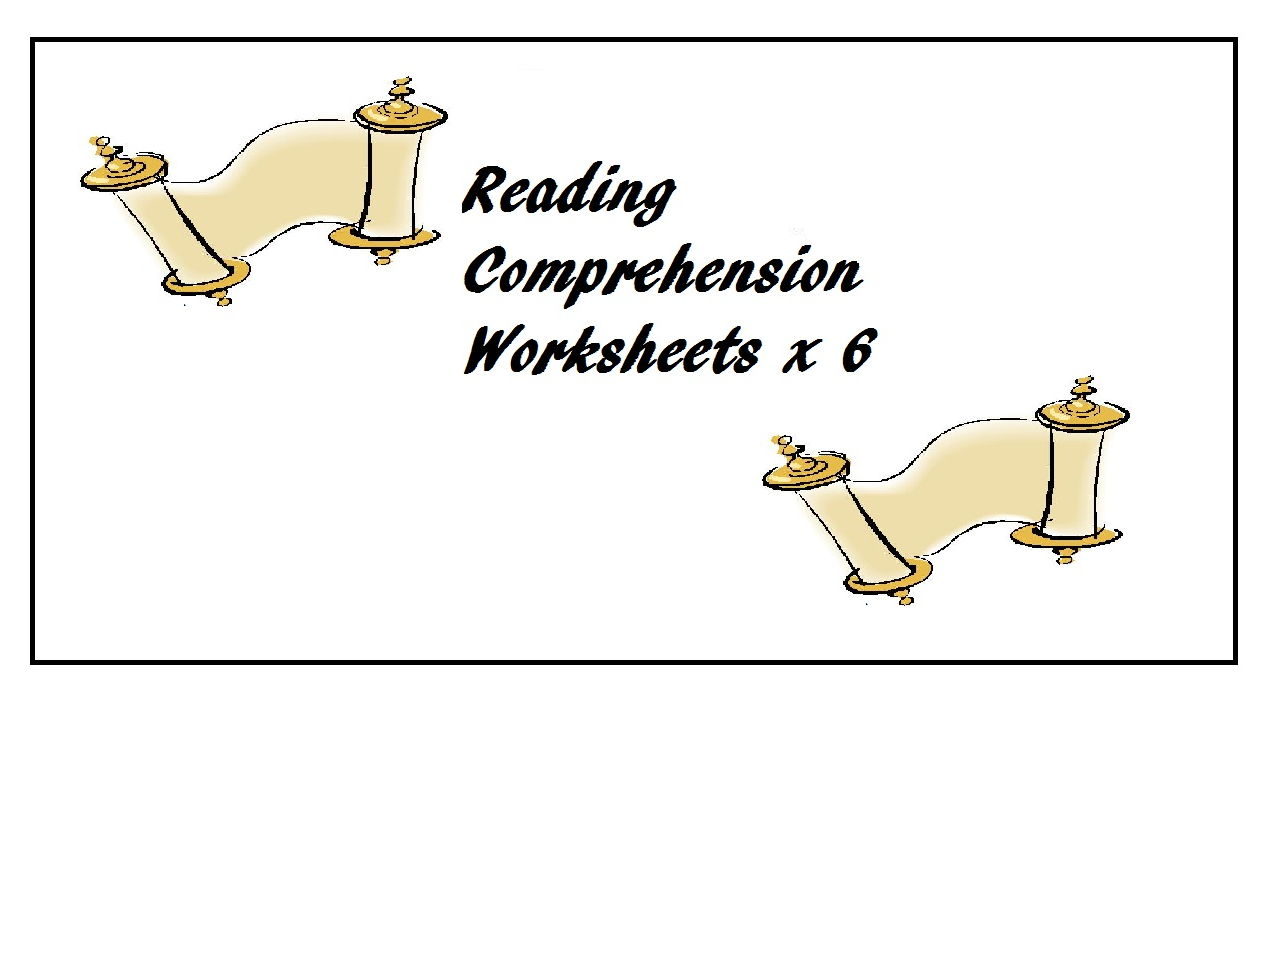 Reading Comprehension Worksheets x 6 (60 % OFF) - ESL, ELT, ELL - Intermediate to Advanced